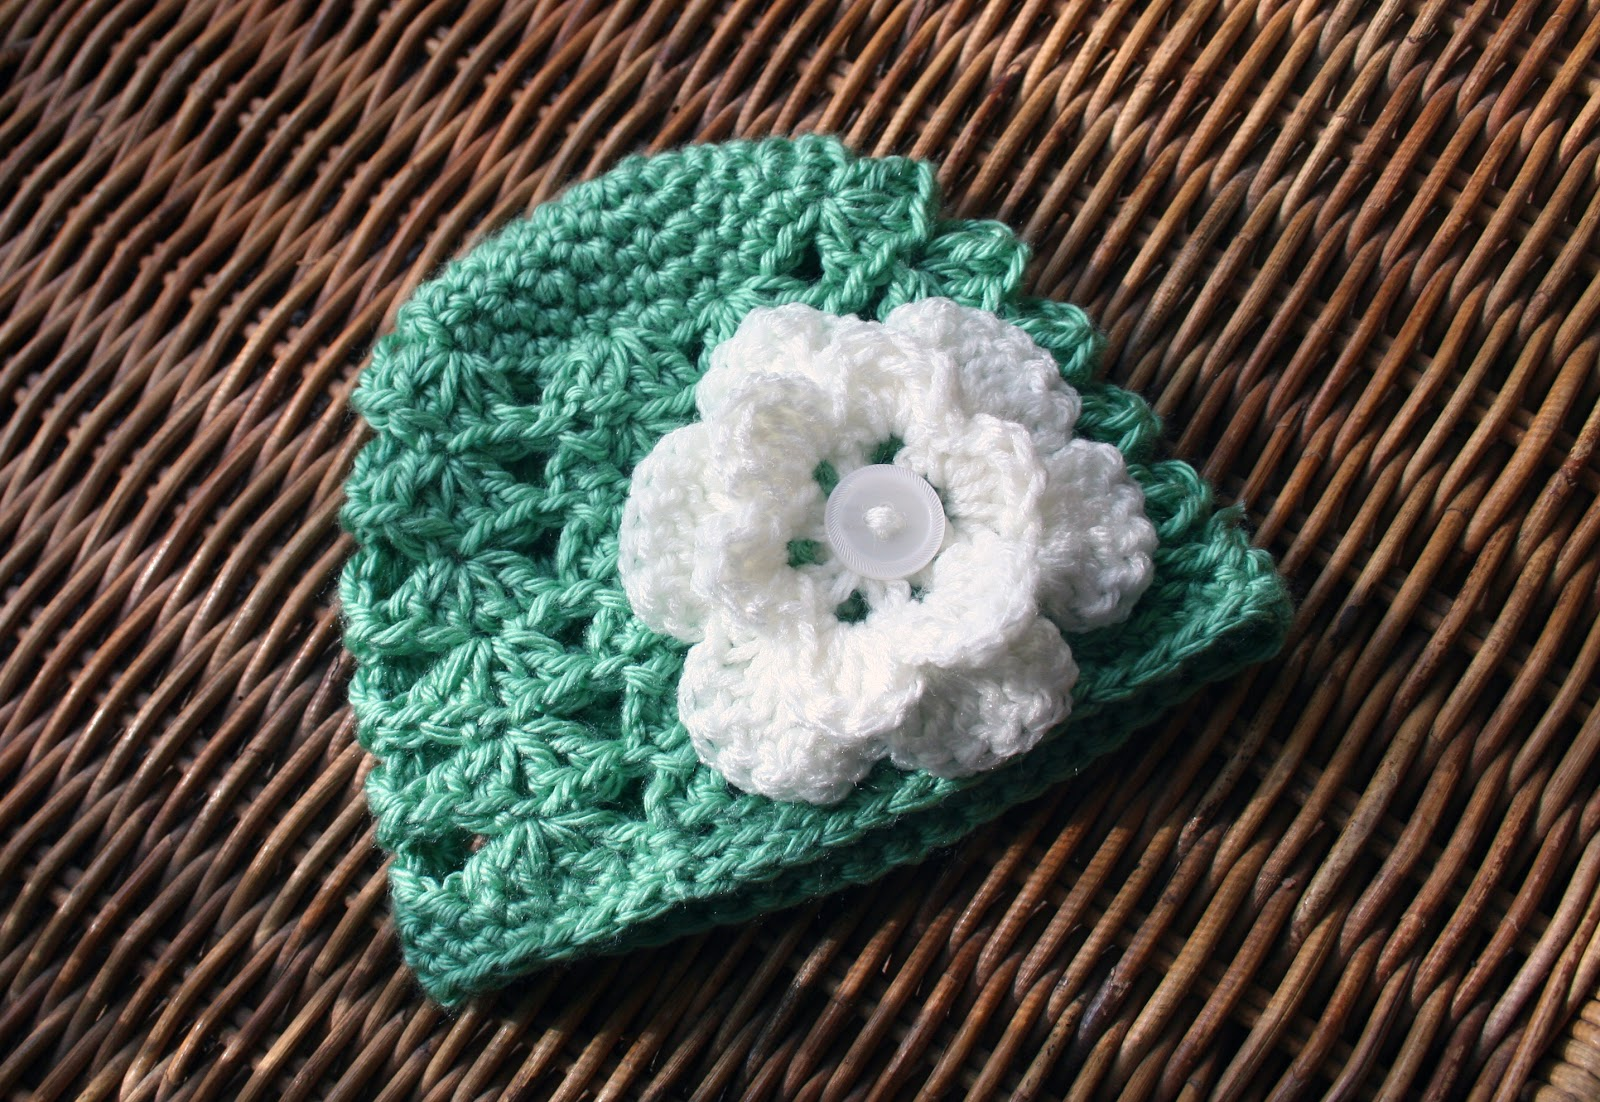 Crochet Beanie Pattern With Flower : Tampa Bay Crochet: Crochet Baby Beanie with Flower